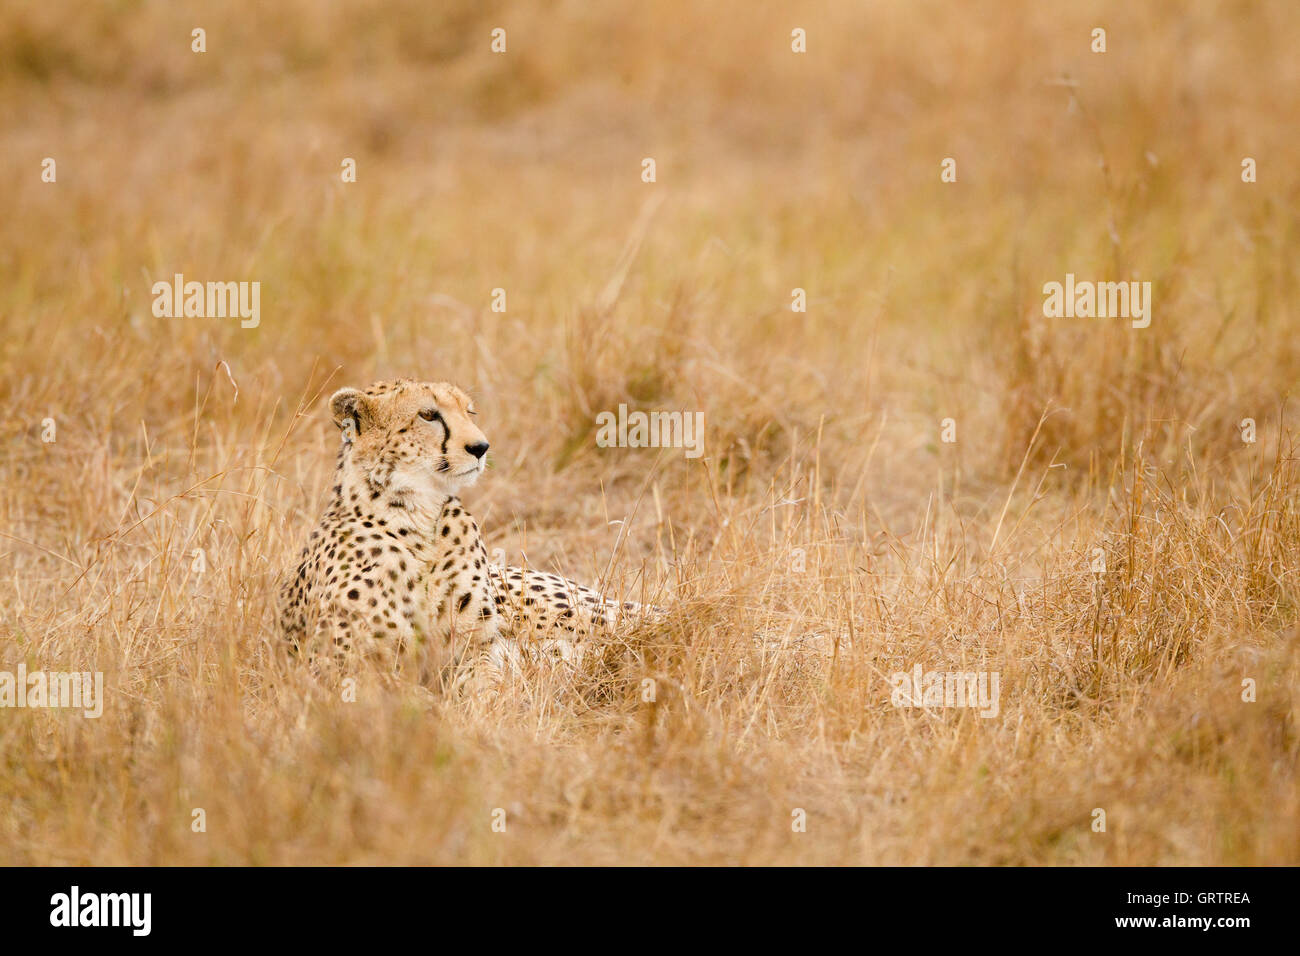 Cheetah dans l'herbe Photo Stock